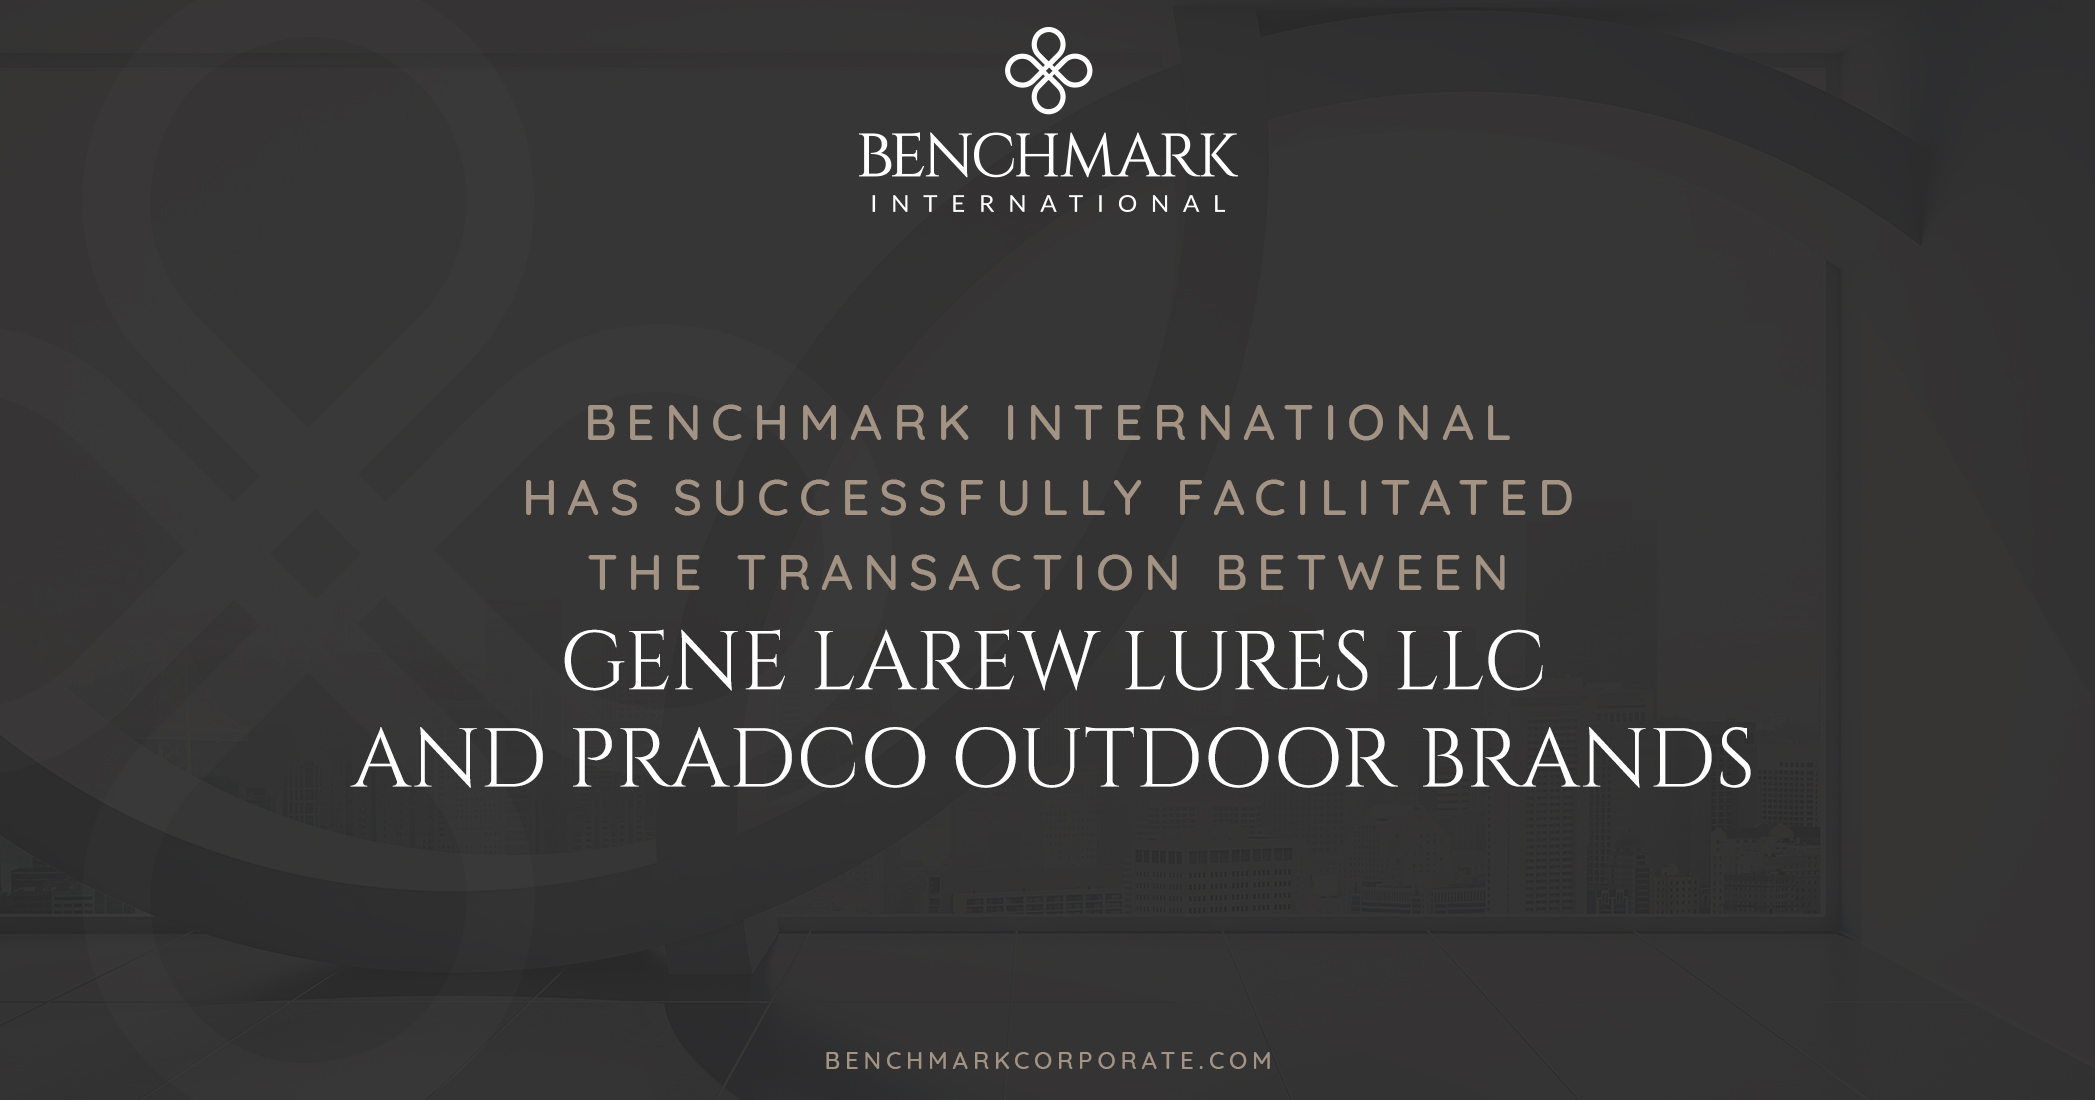 Benchmark International Facilitated the Transaction of Gene Larew Lures to PRADCO Outdoor Brands